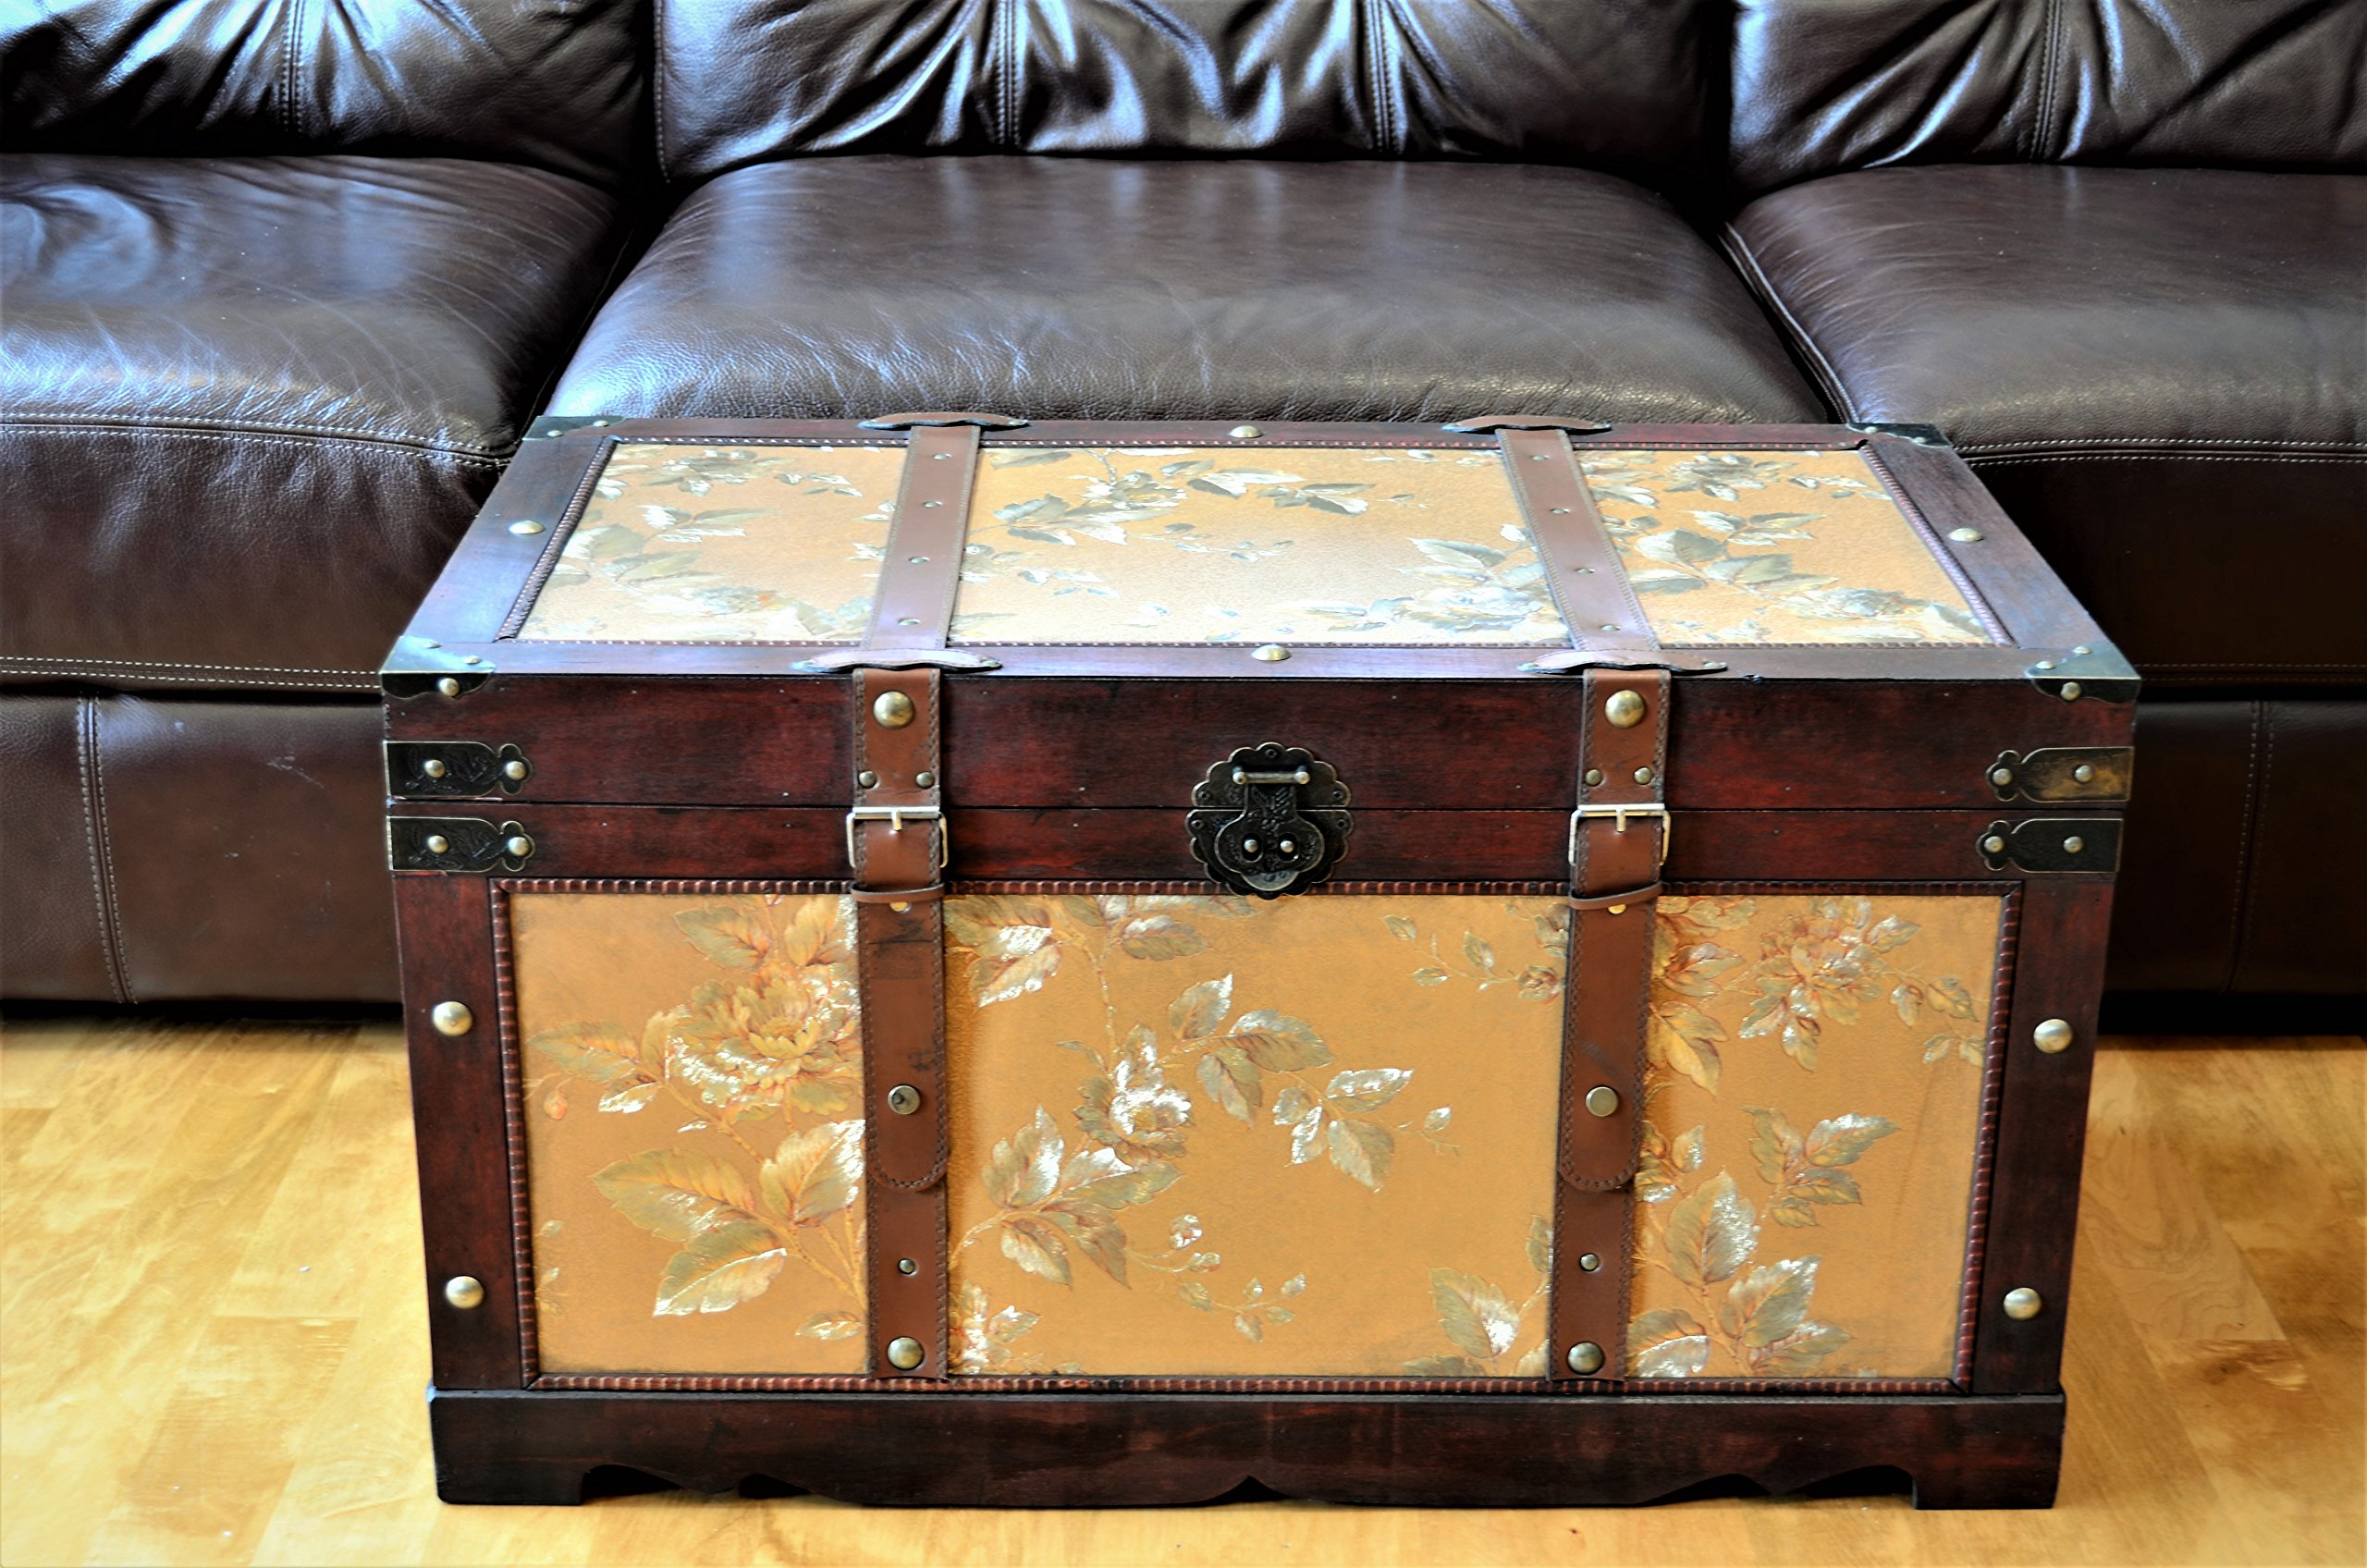 Styled Shopping Gold Leaves Large Wood Storage Trunk Wooden Treasure Chest by Styled Shopping